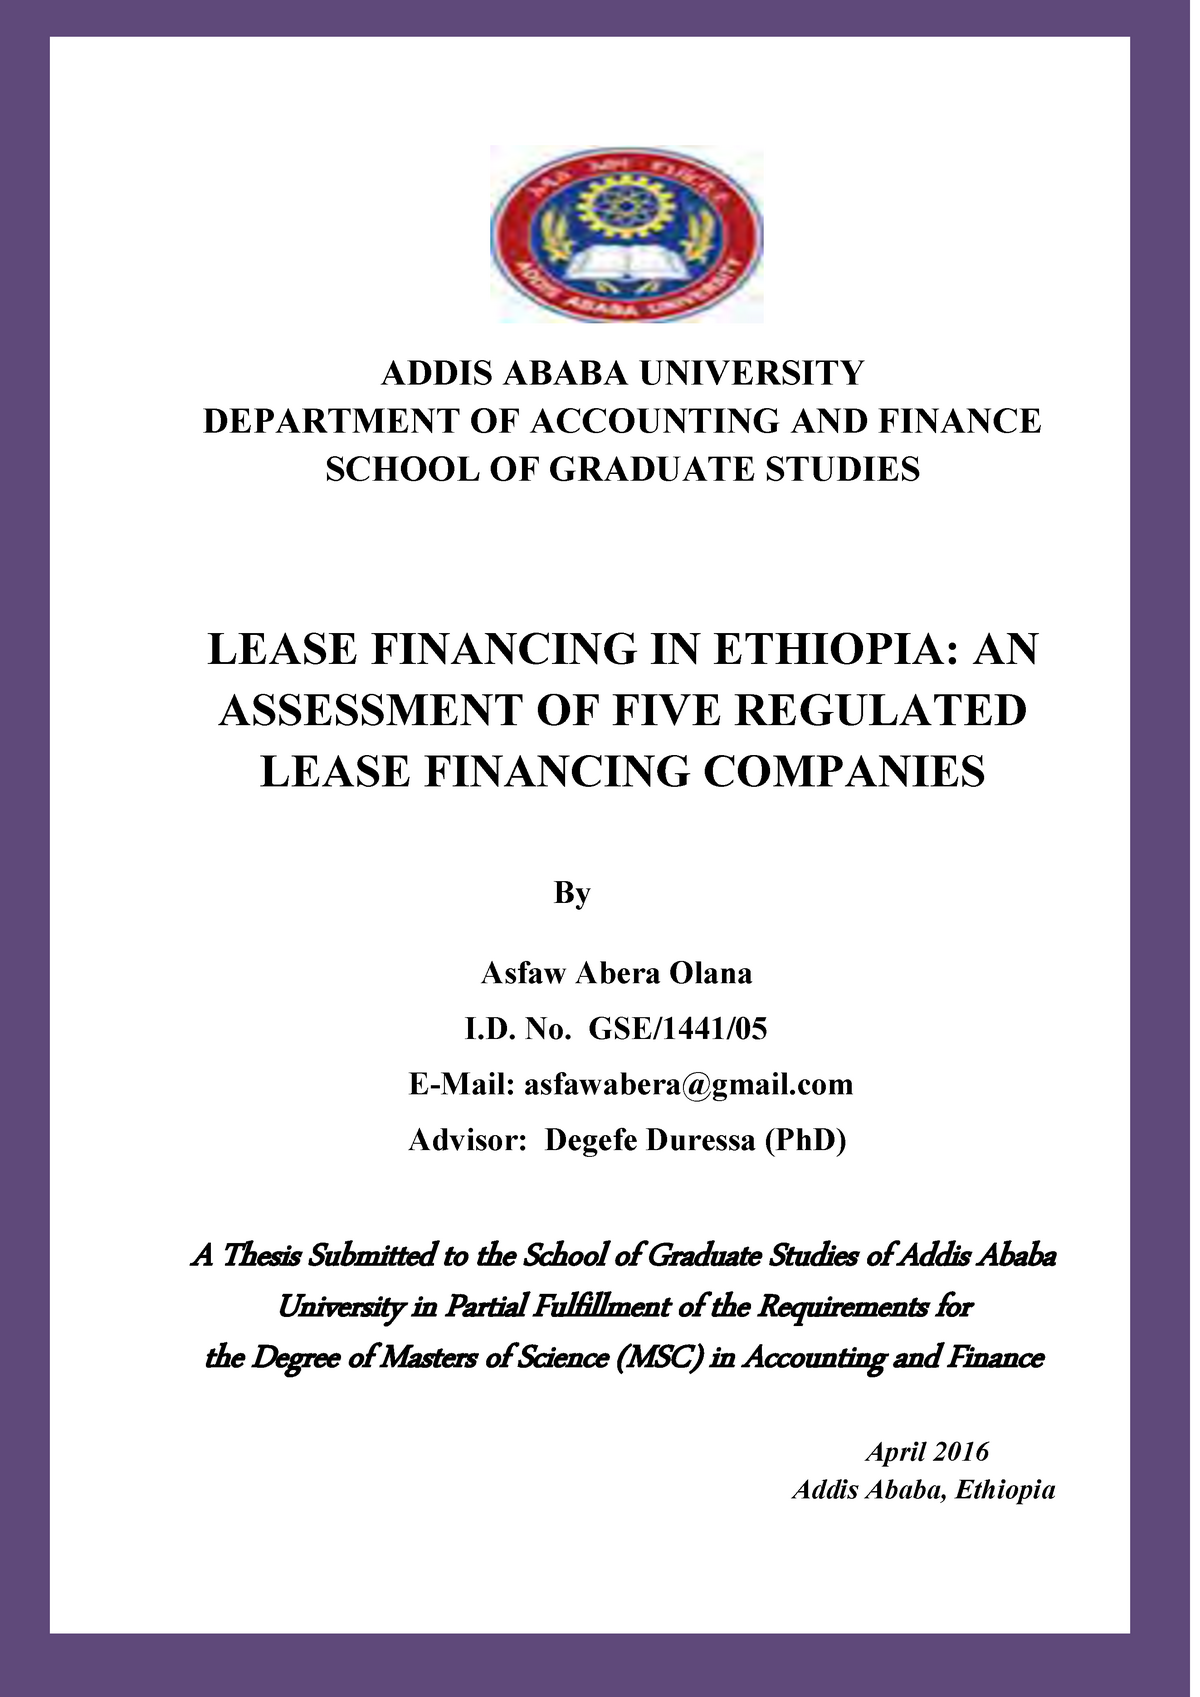 Asfaw Abera lease in ethiopia - BUS 520: Managerial Accounting - StuDocu